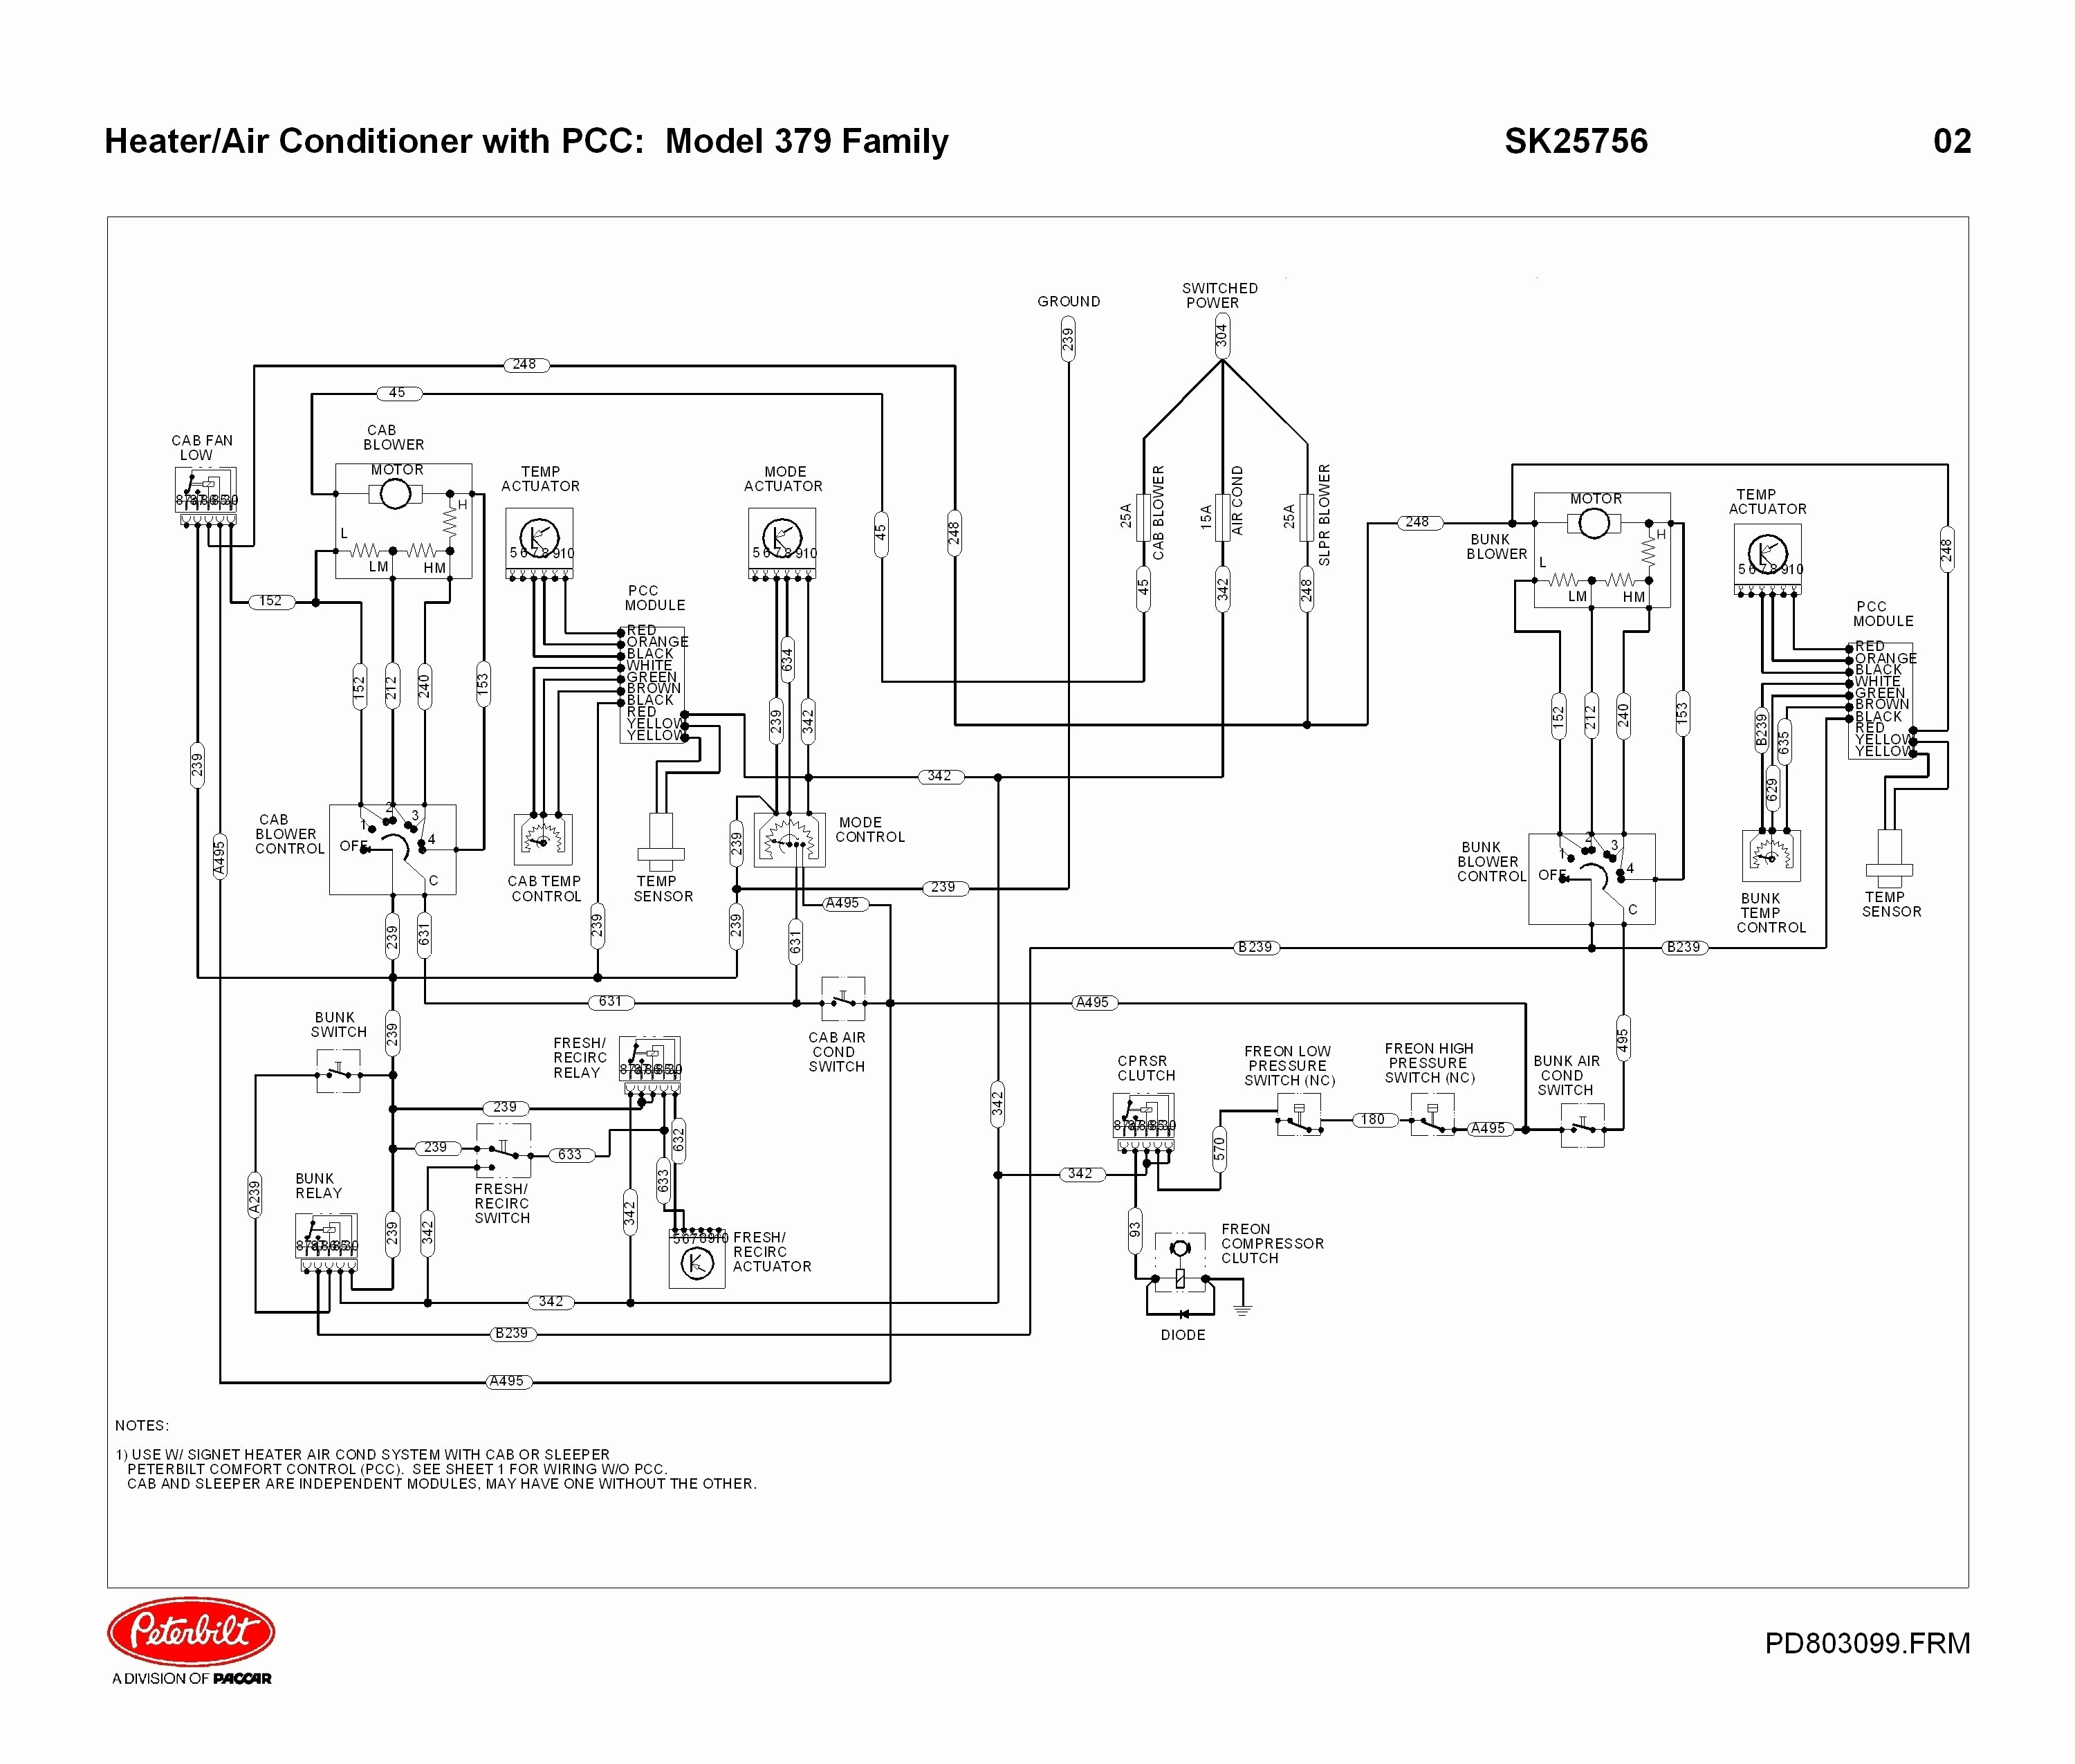 2011 Peterbilt Wiring Diagram